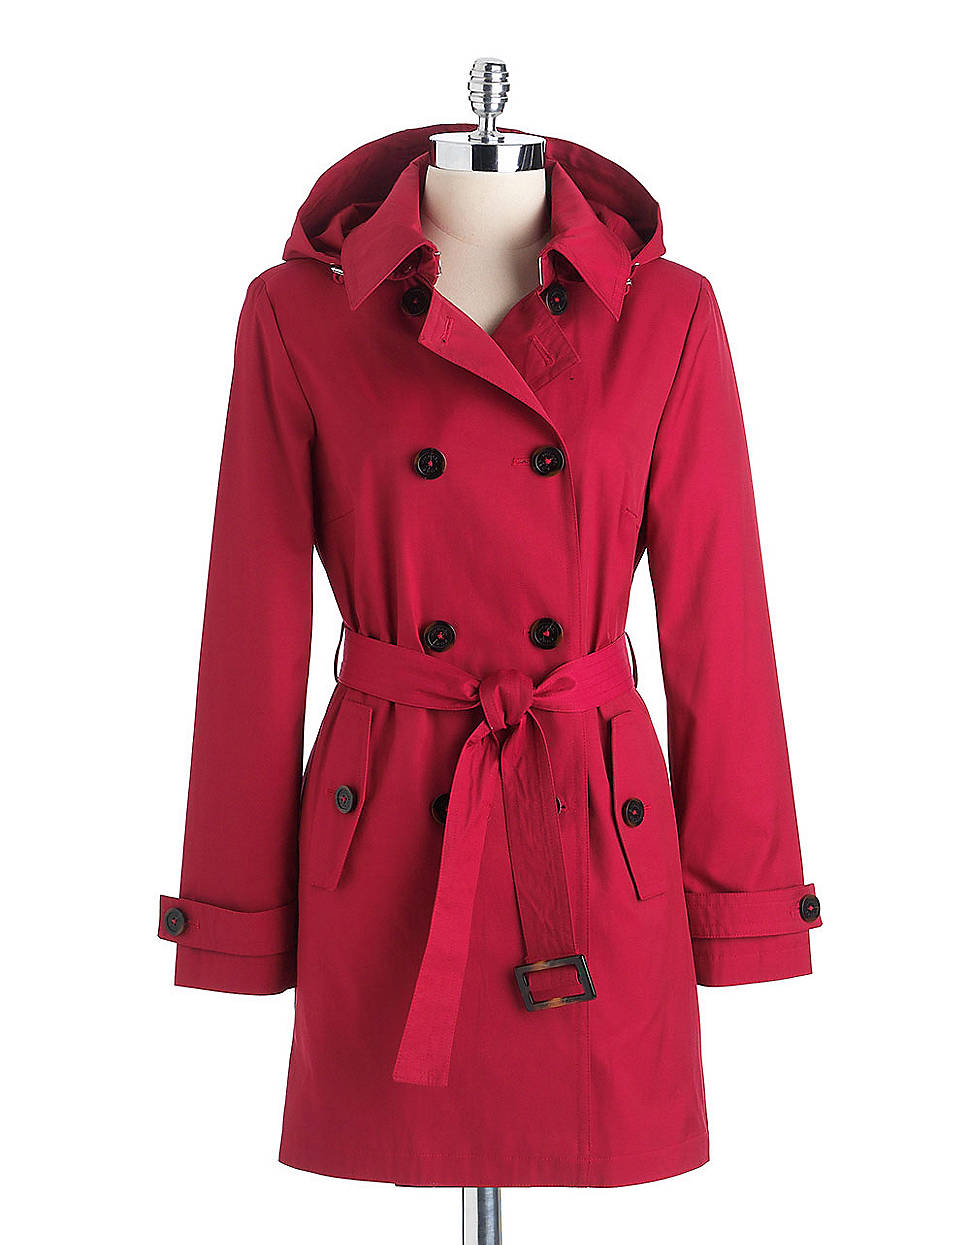 Michael kors Double Breasted Trench Coat in Pink   Lyst